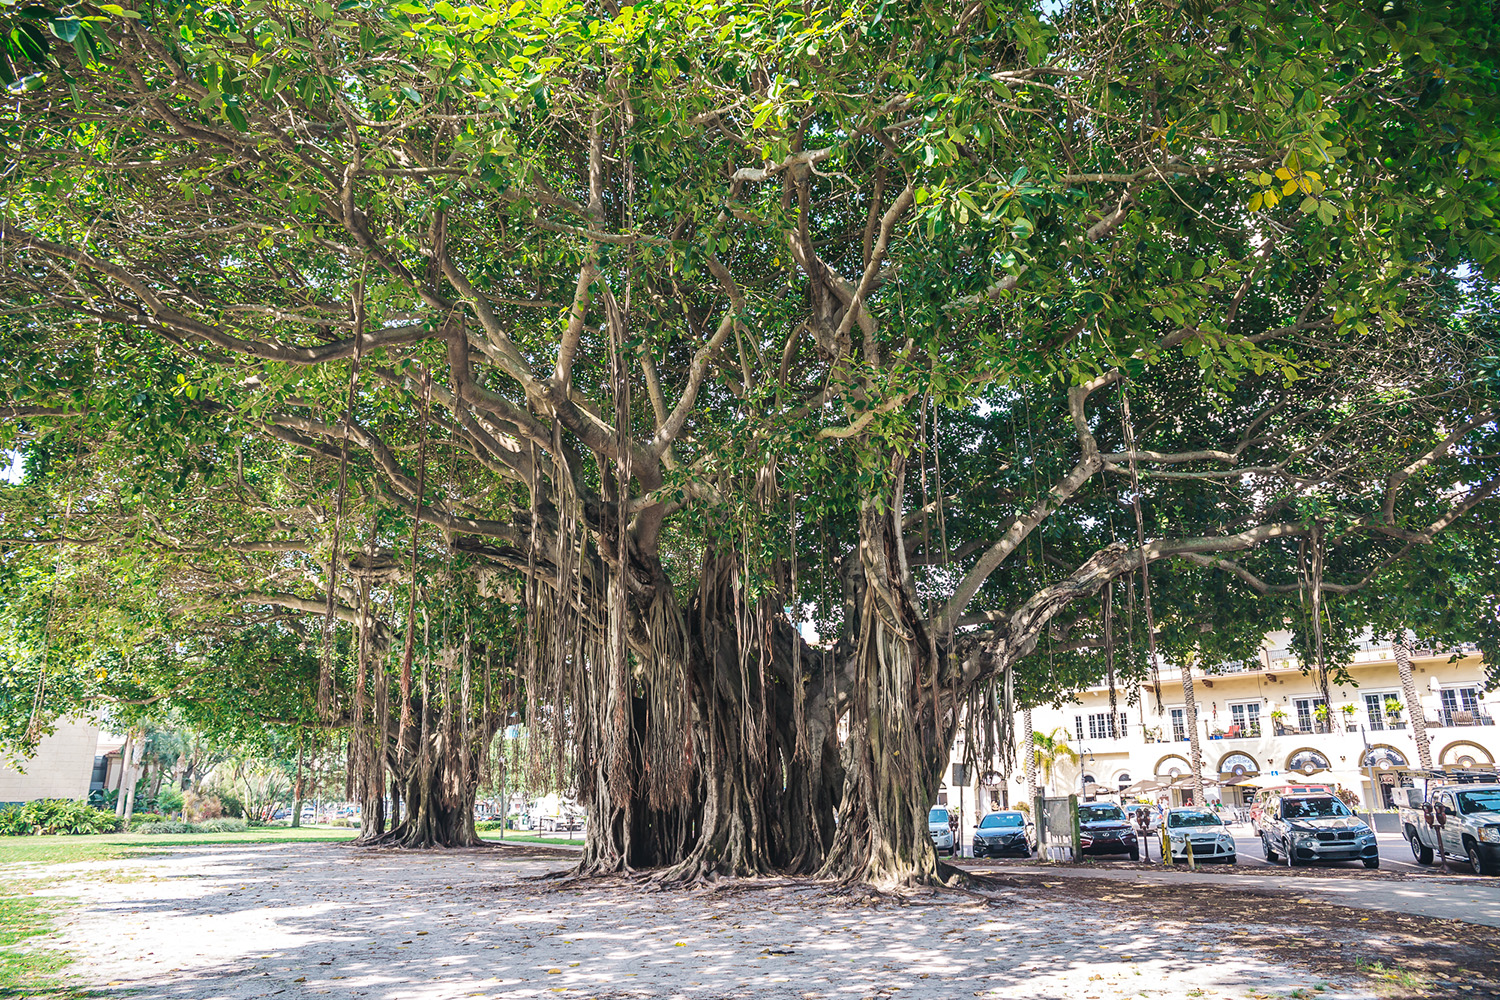 Giant banyan tree in Vinoy Park